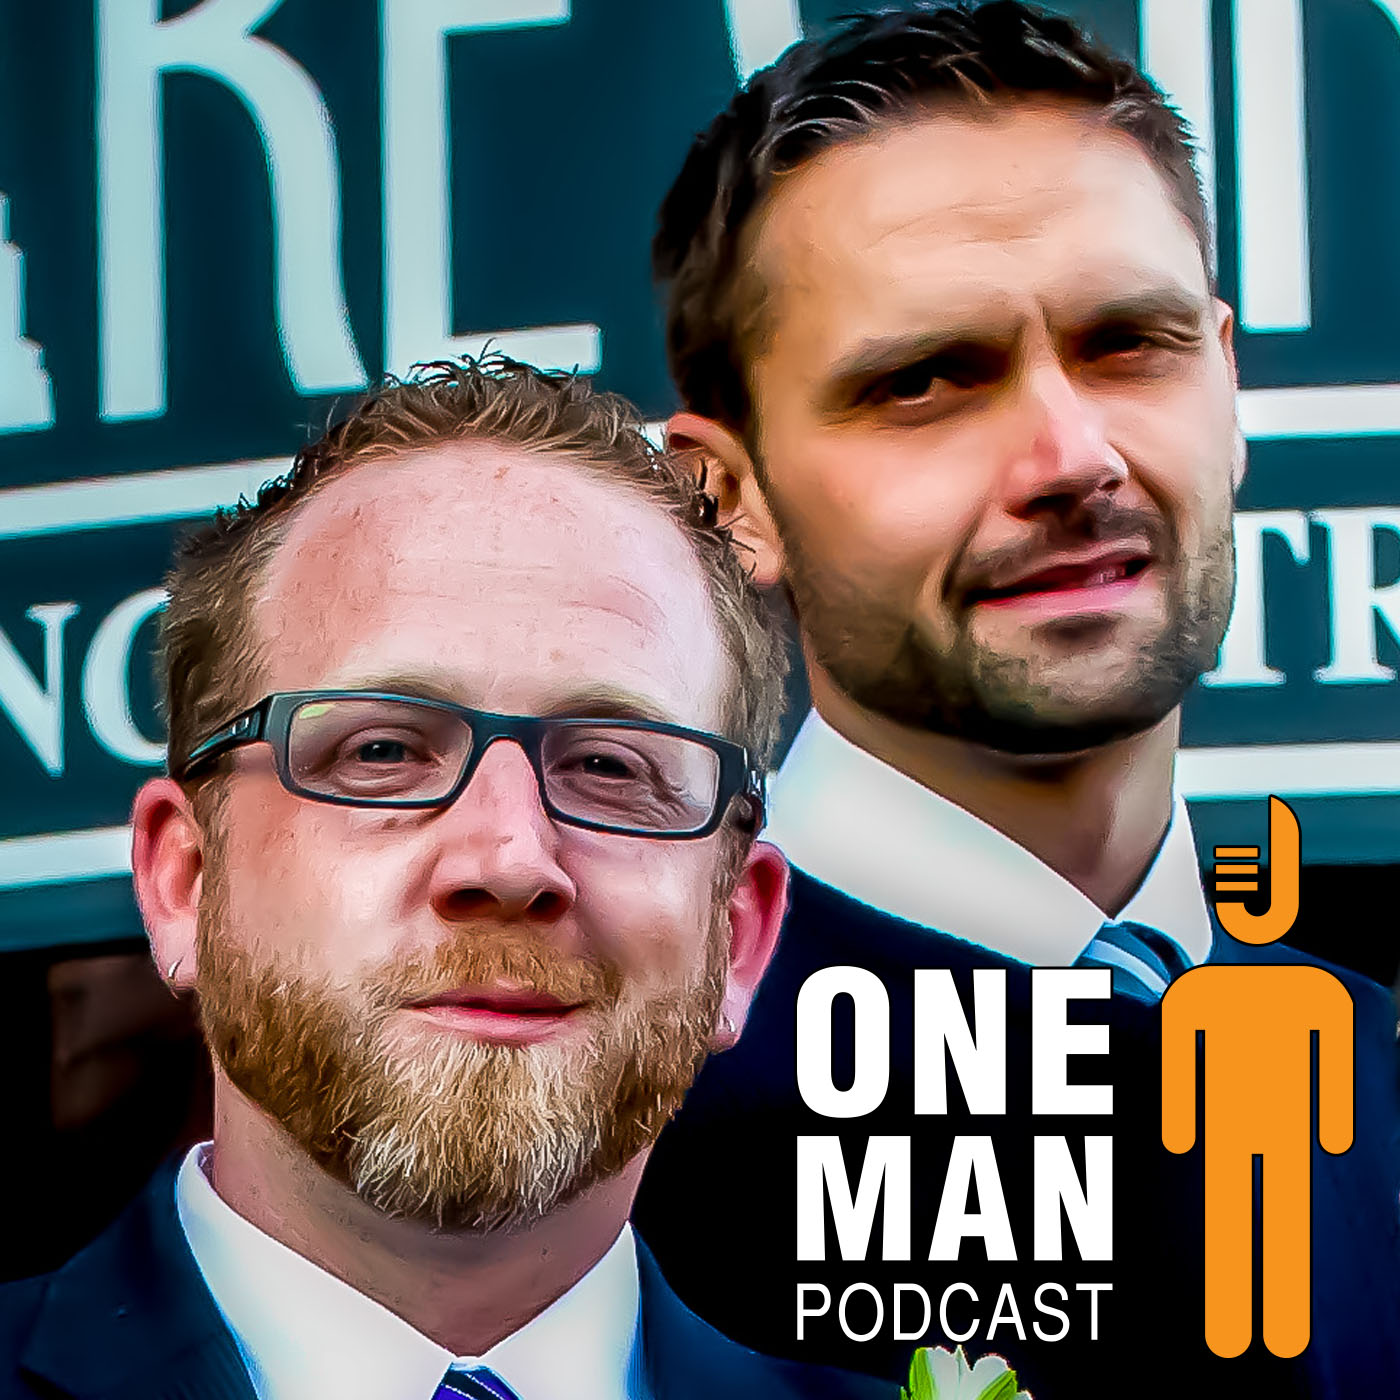 One Man Podcast - Jimmy & Micah